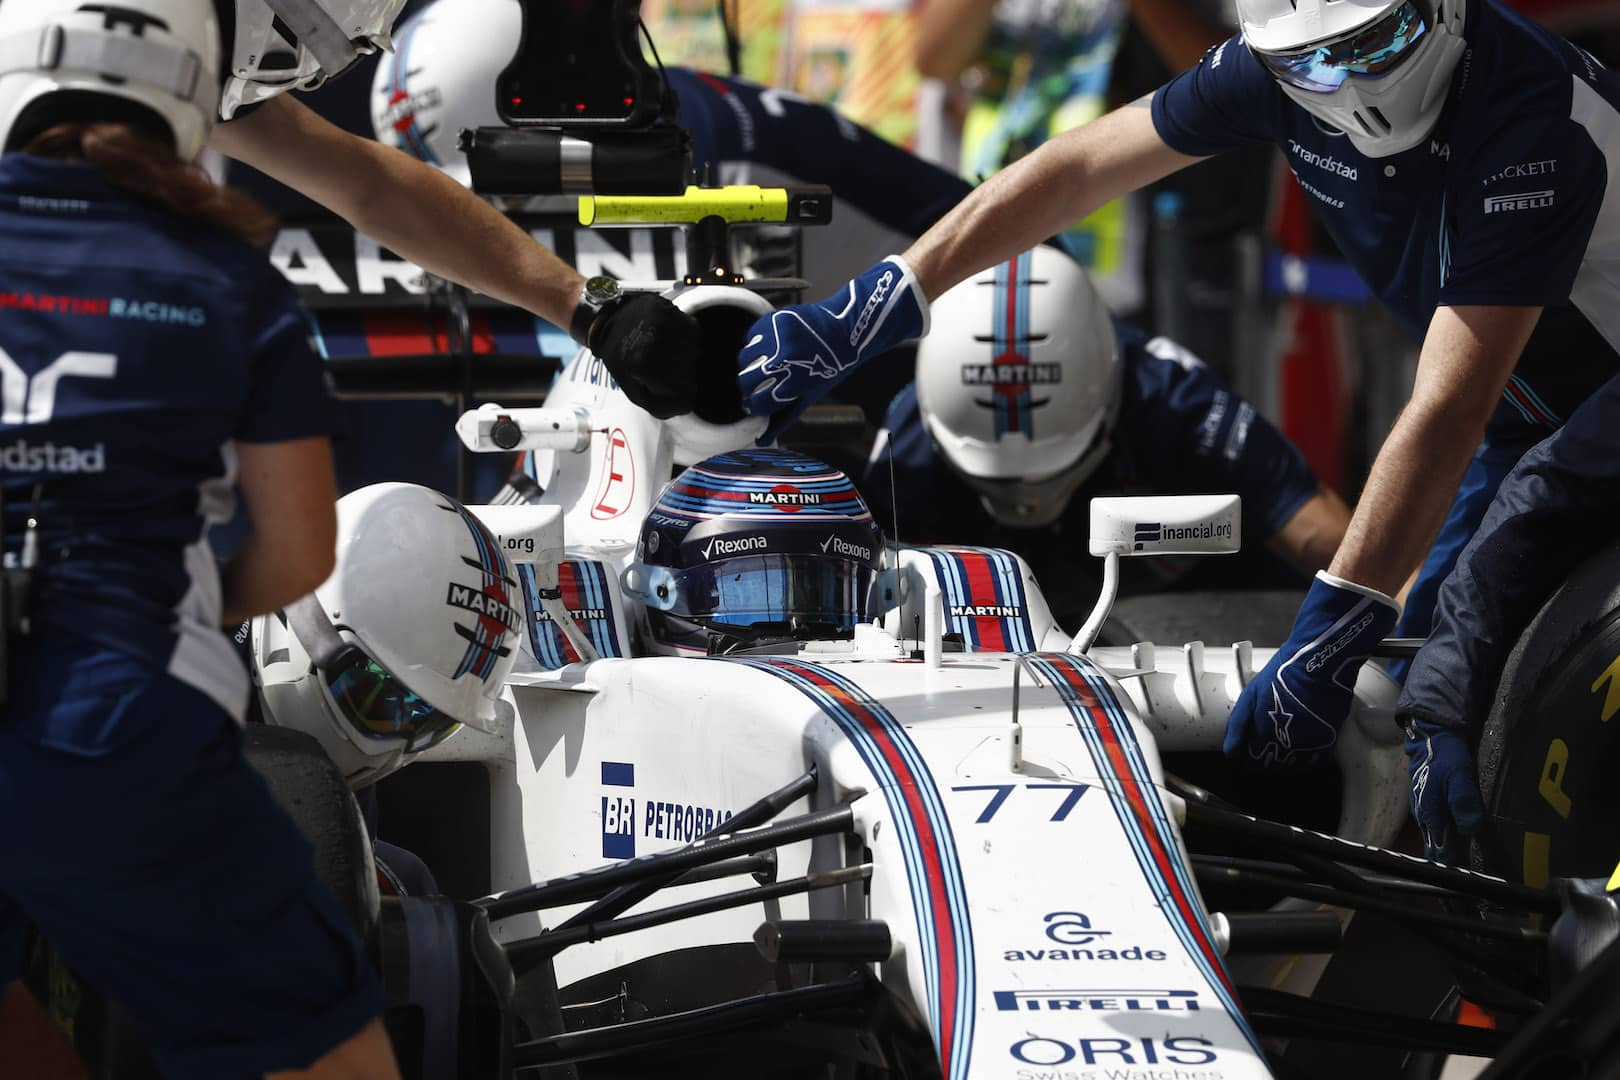 Interlagos, Sao Paulo, Brazil. Friday 11 November 2016. Valtteri Bottas, Williams FW38 Mercedes, in the pits. Photo: Glenn Dunbar/Williams ref: Digital Image _31I4875